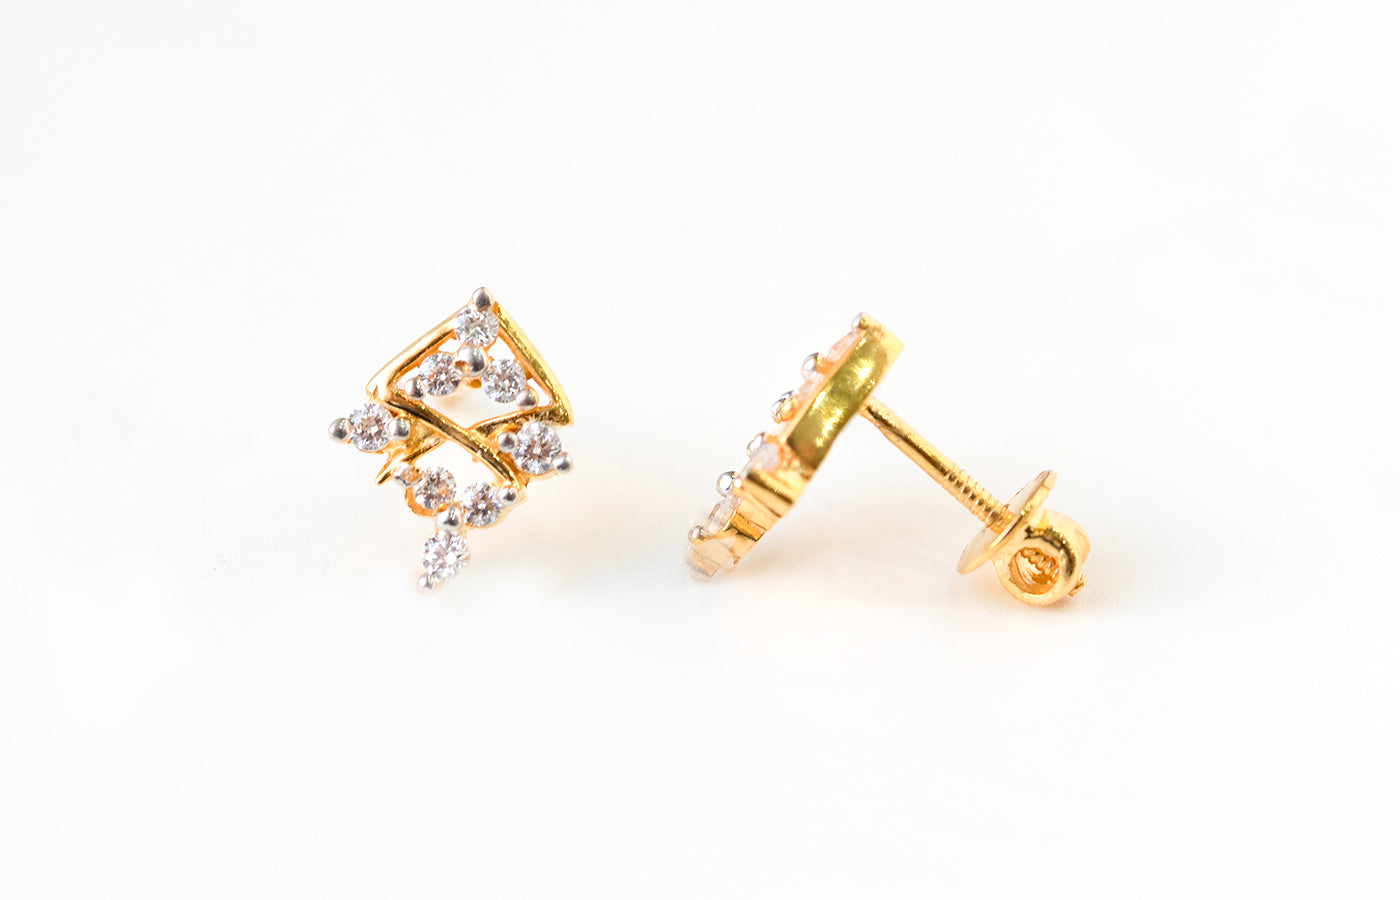 22ct Gold Stud Earrings set with Swarovski Zirconias (2.91g) ET7050